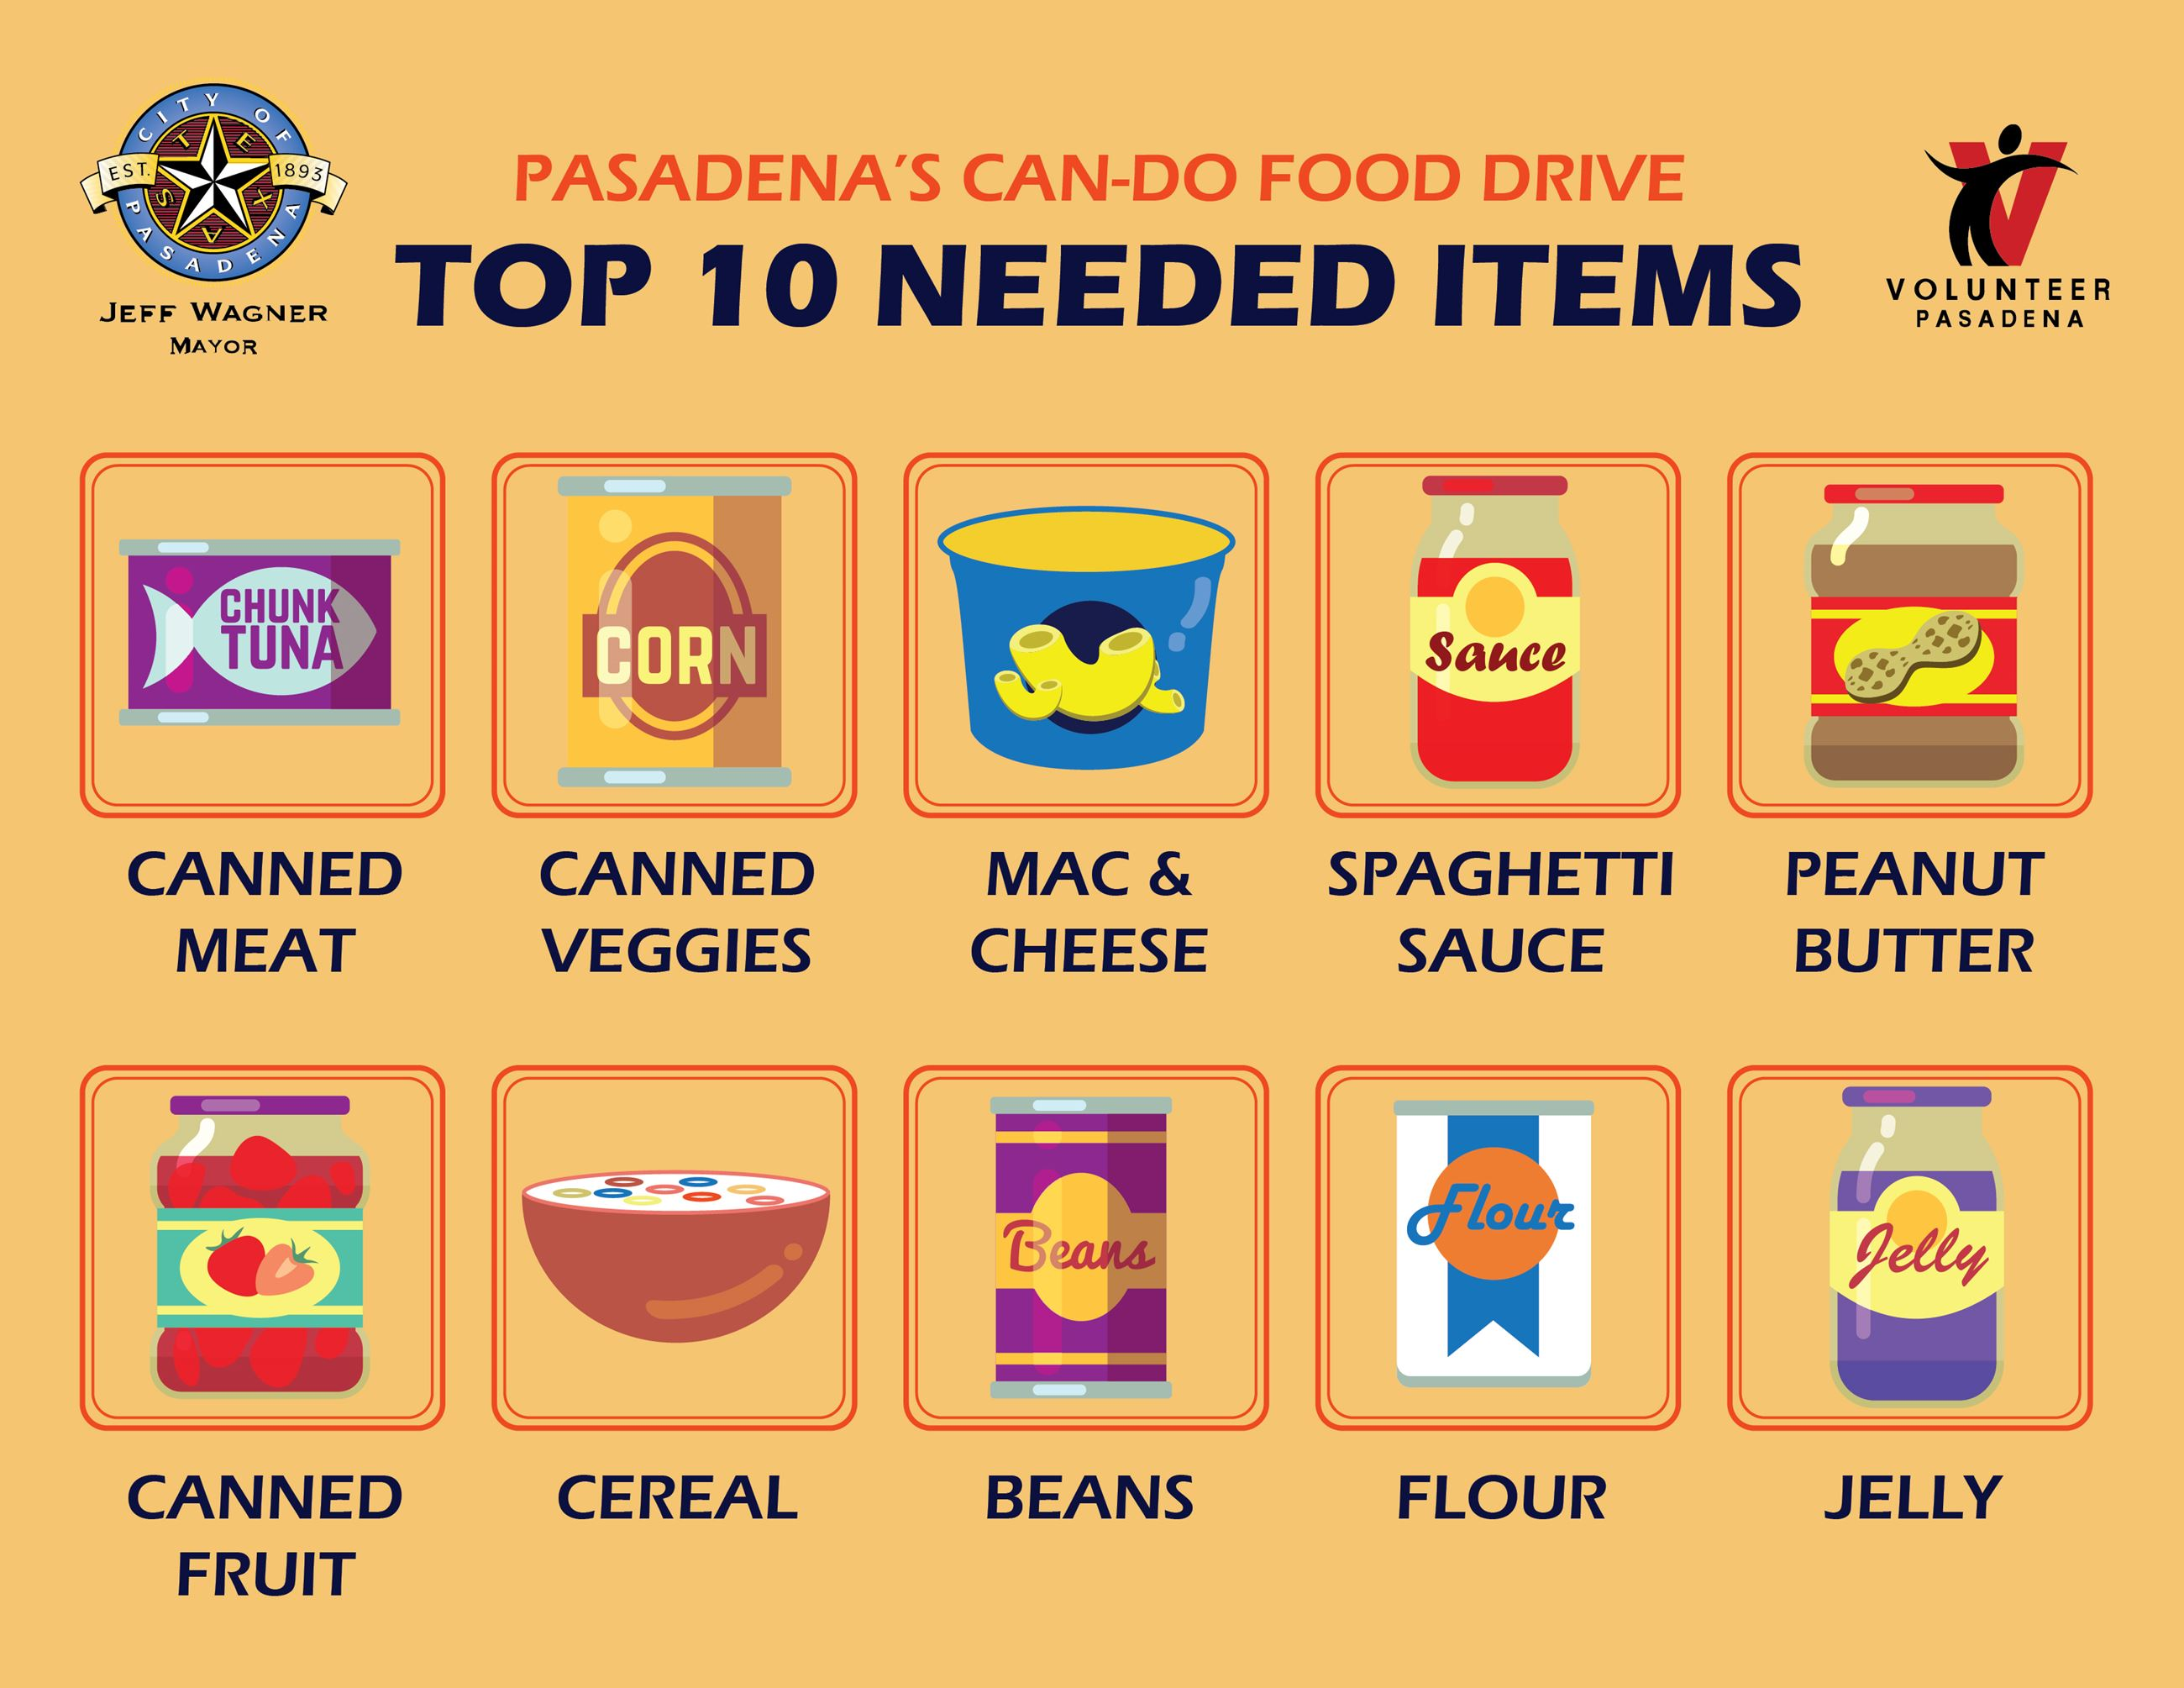 Top 10 Needed Foods for the Can-Do Food Drive